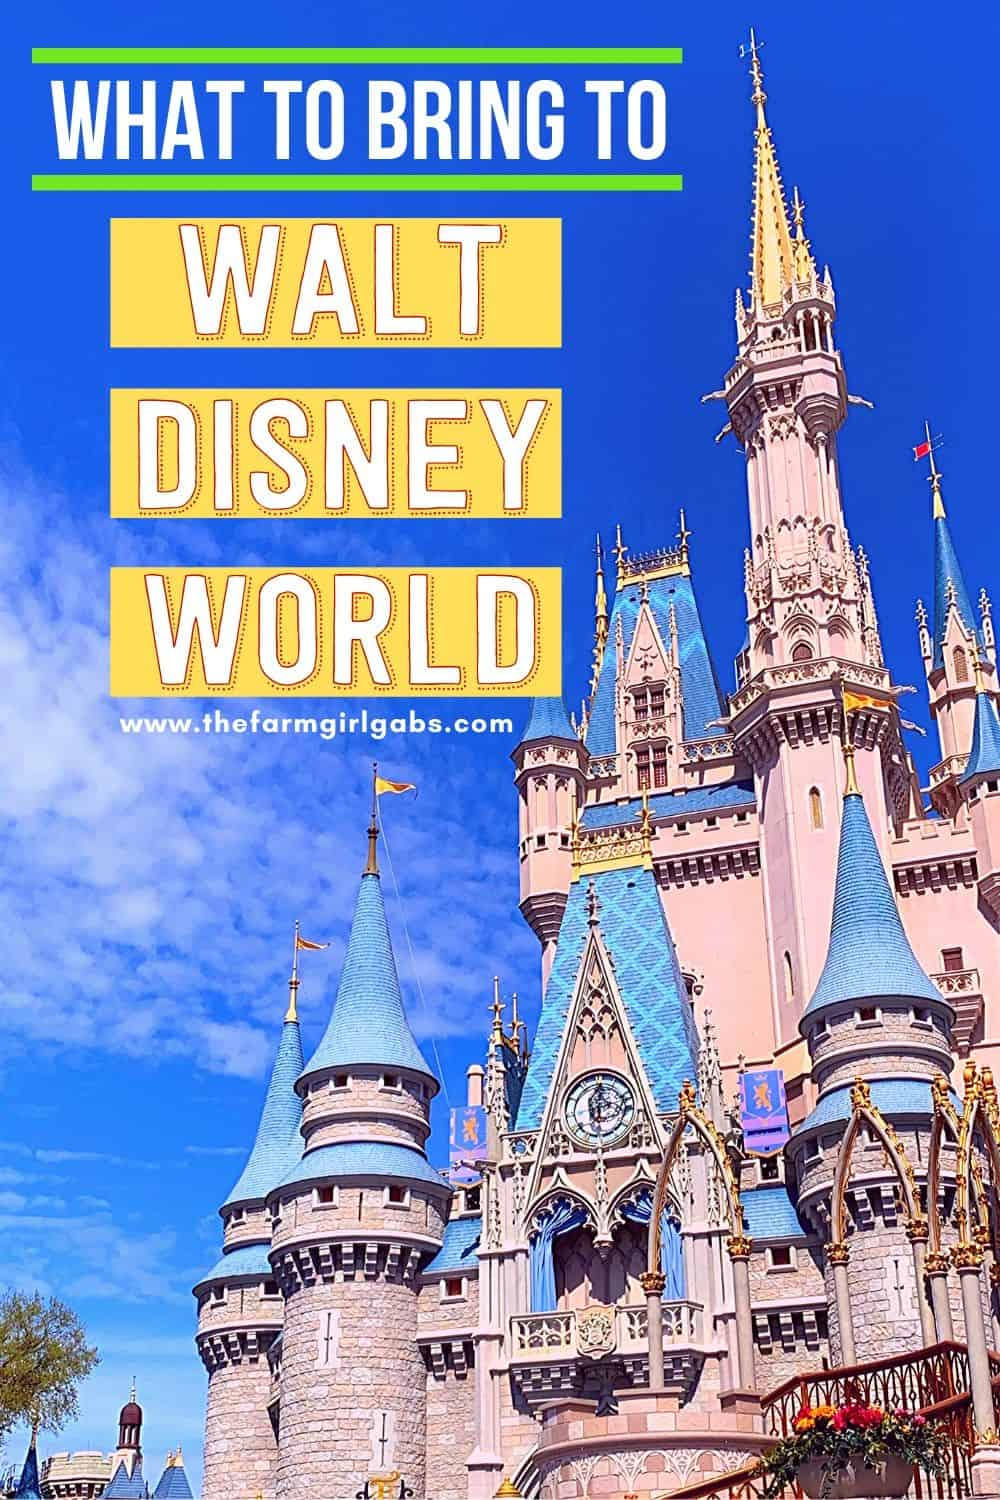 Free Disney Packing List! Heading to Walt Disney World Soon. Pack more fun and print this Essential Walt Disney World Packing List so you don't forget any of the Disney Packing essentials! Plan your perfect Disney World Vacation with these helpful Disney vacation tips. Print out this free Disney Packing List before you leave. #disneyworld #disneypackinglist #disneyhacks #disneytrip